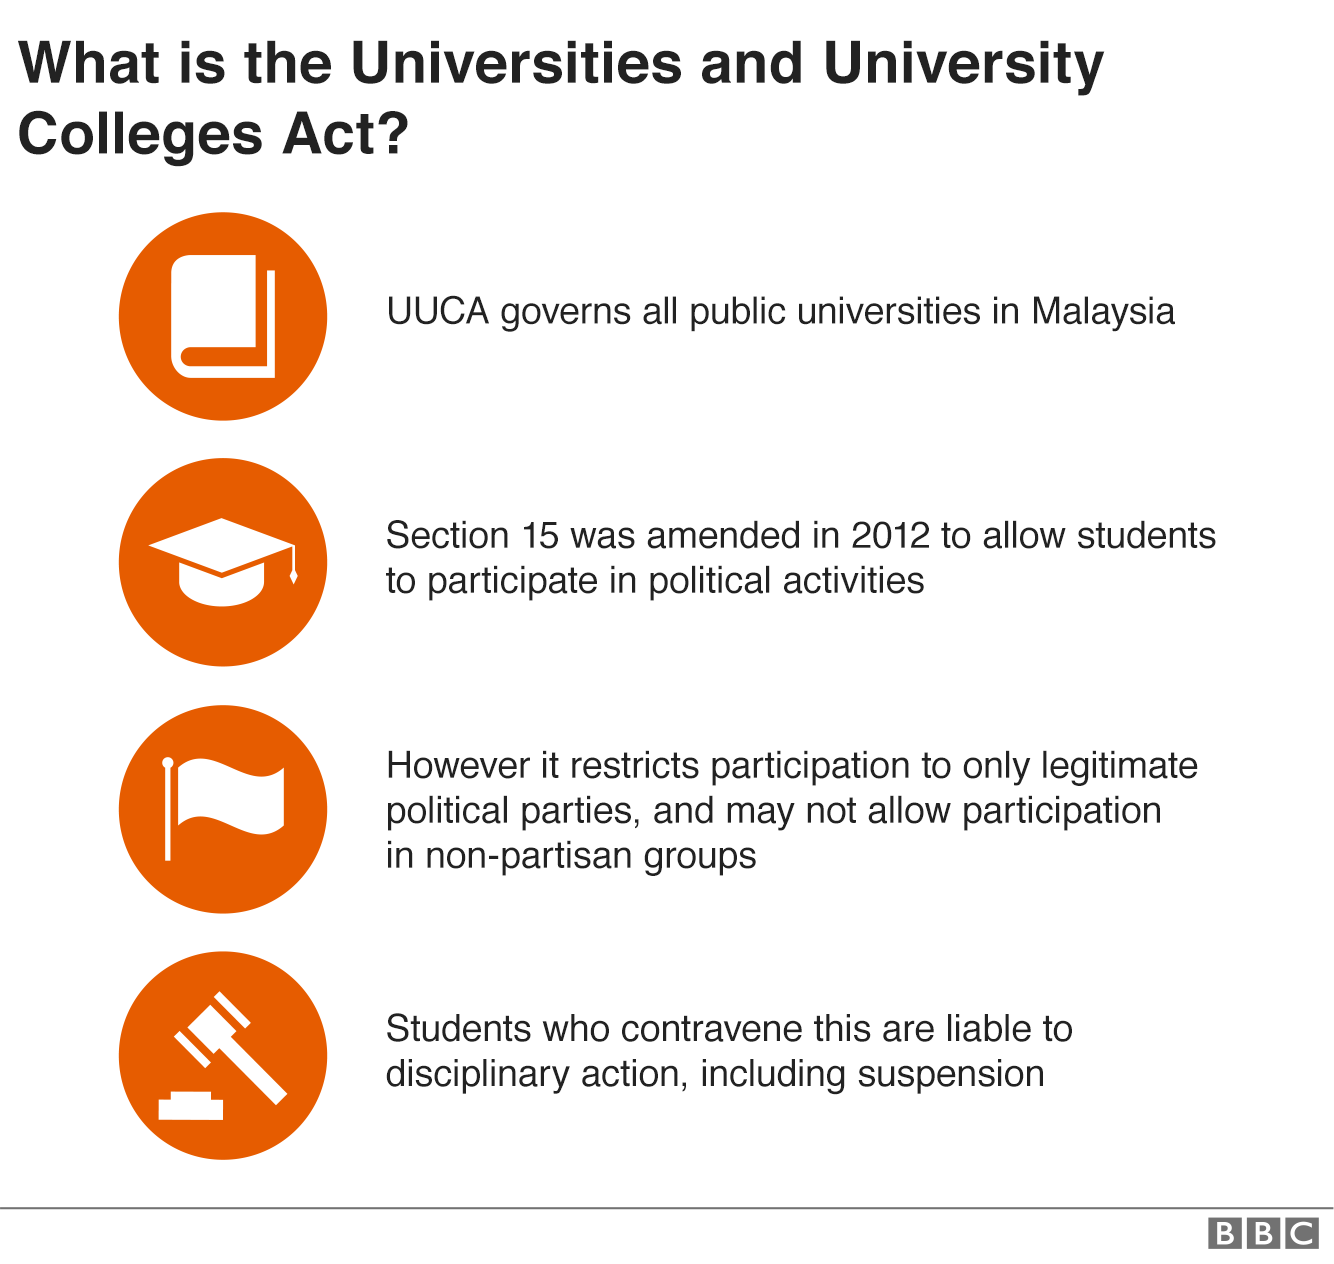 An infographic with facts about the Universities and Universtiy Colleges Act